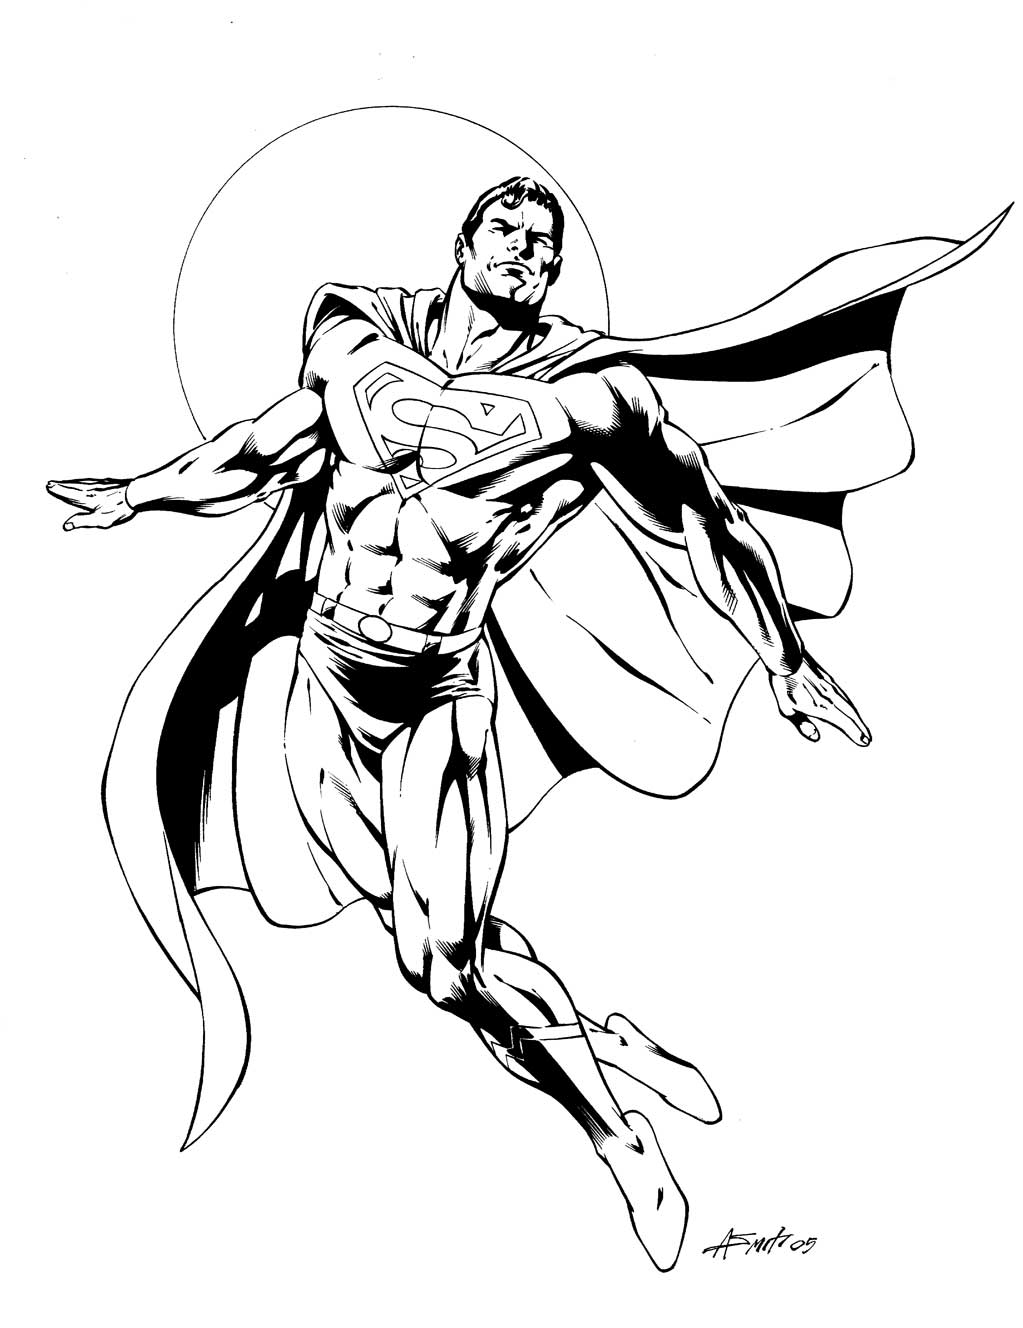 superman coloring pages to print - superman coloring pages printable best gift ideas blog